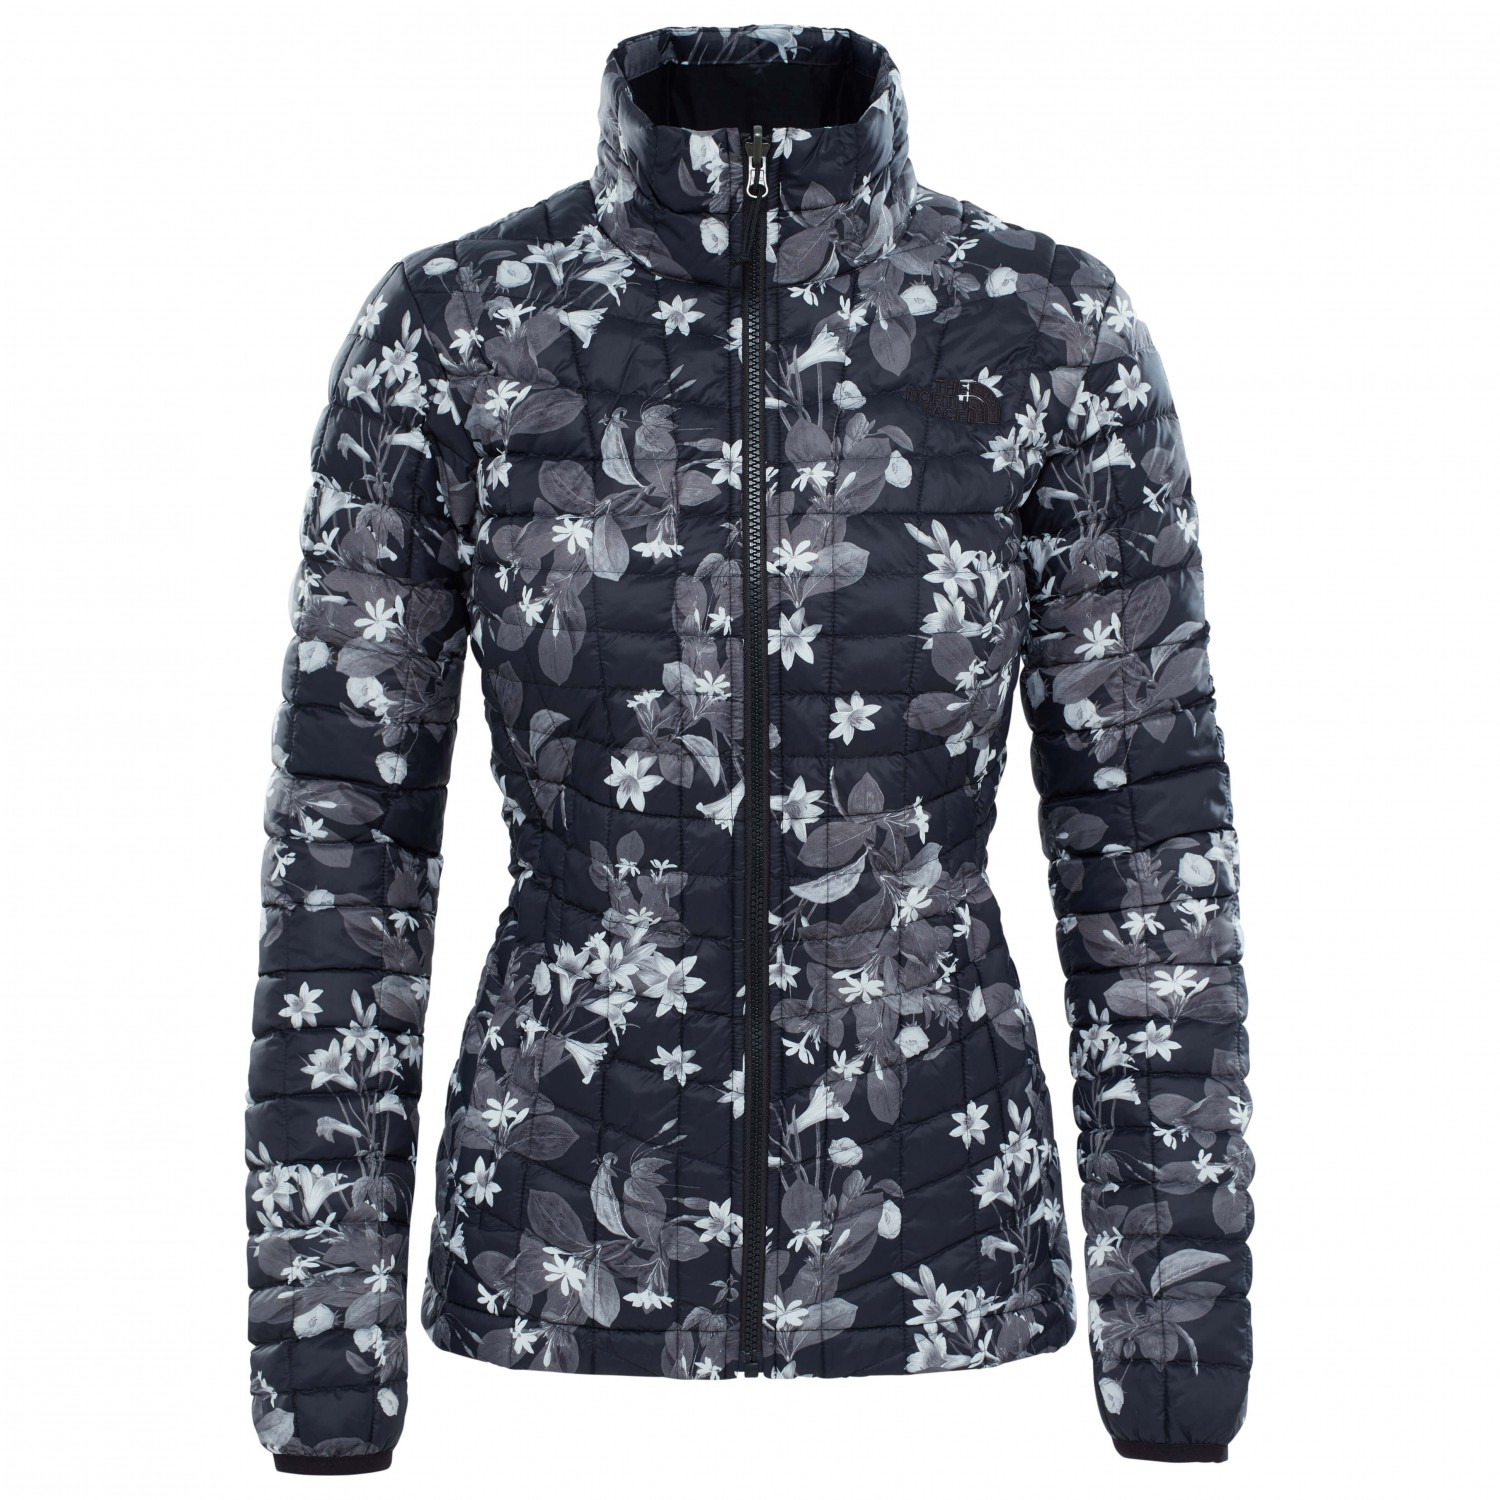 a91a5f2a9 The North Face - Women's Thermoball Triclimate Jacket - 3-in-1 jacket